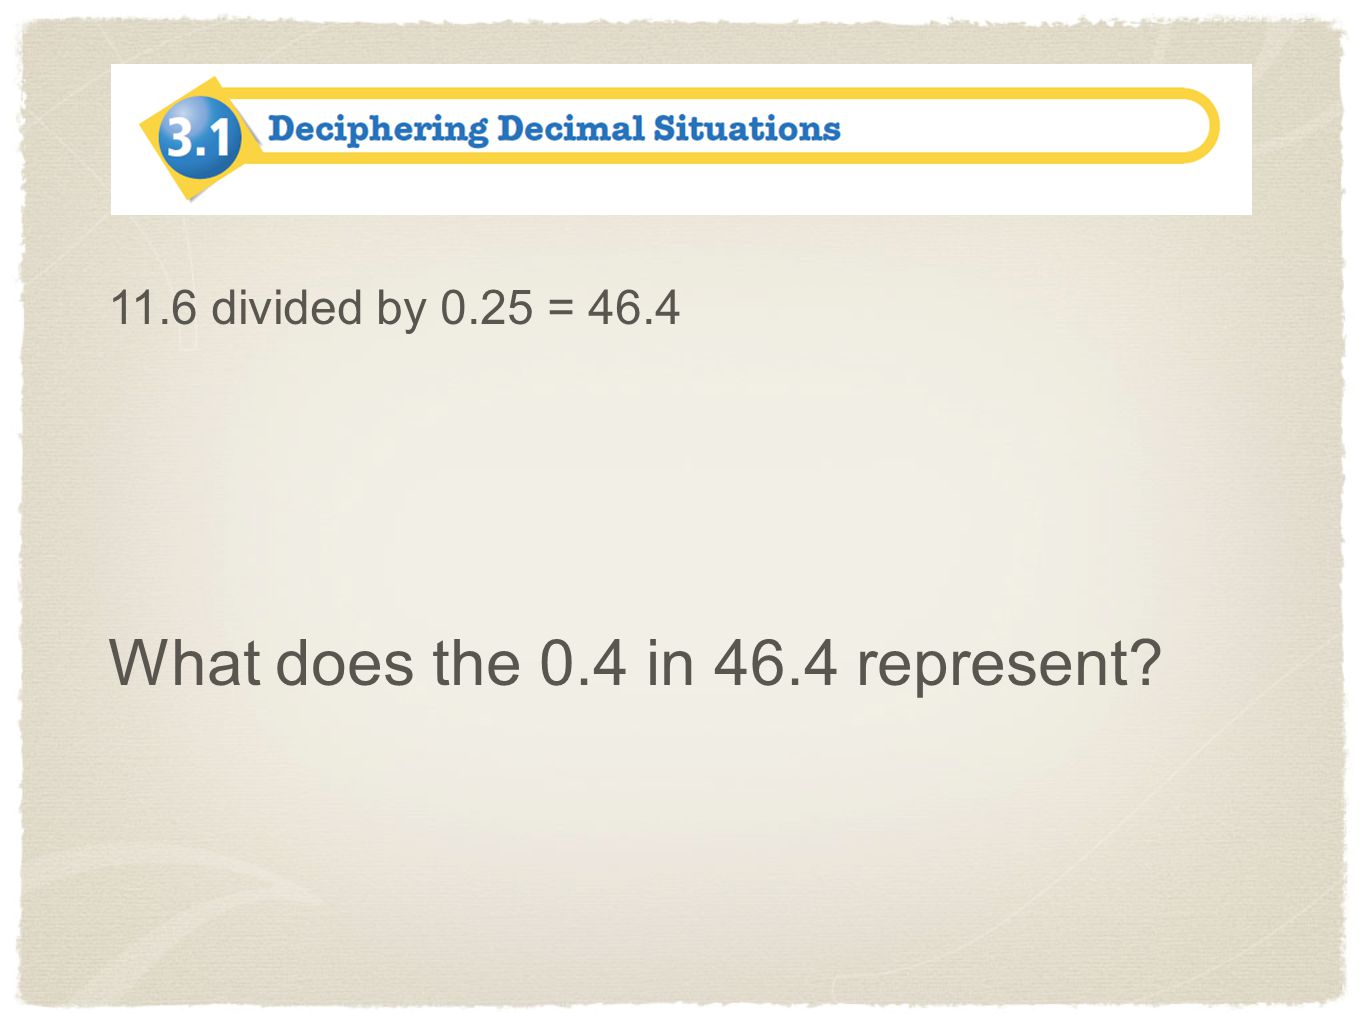 11.6 divided by 0.25 = 46.4 What does the 0.4 in 46.4 represent?